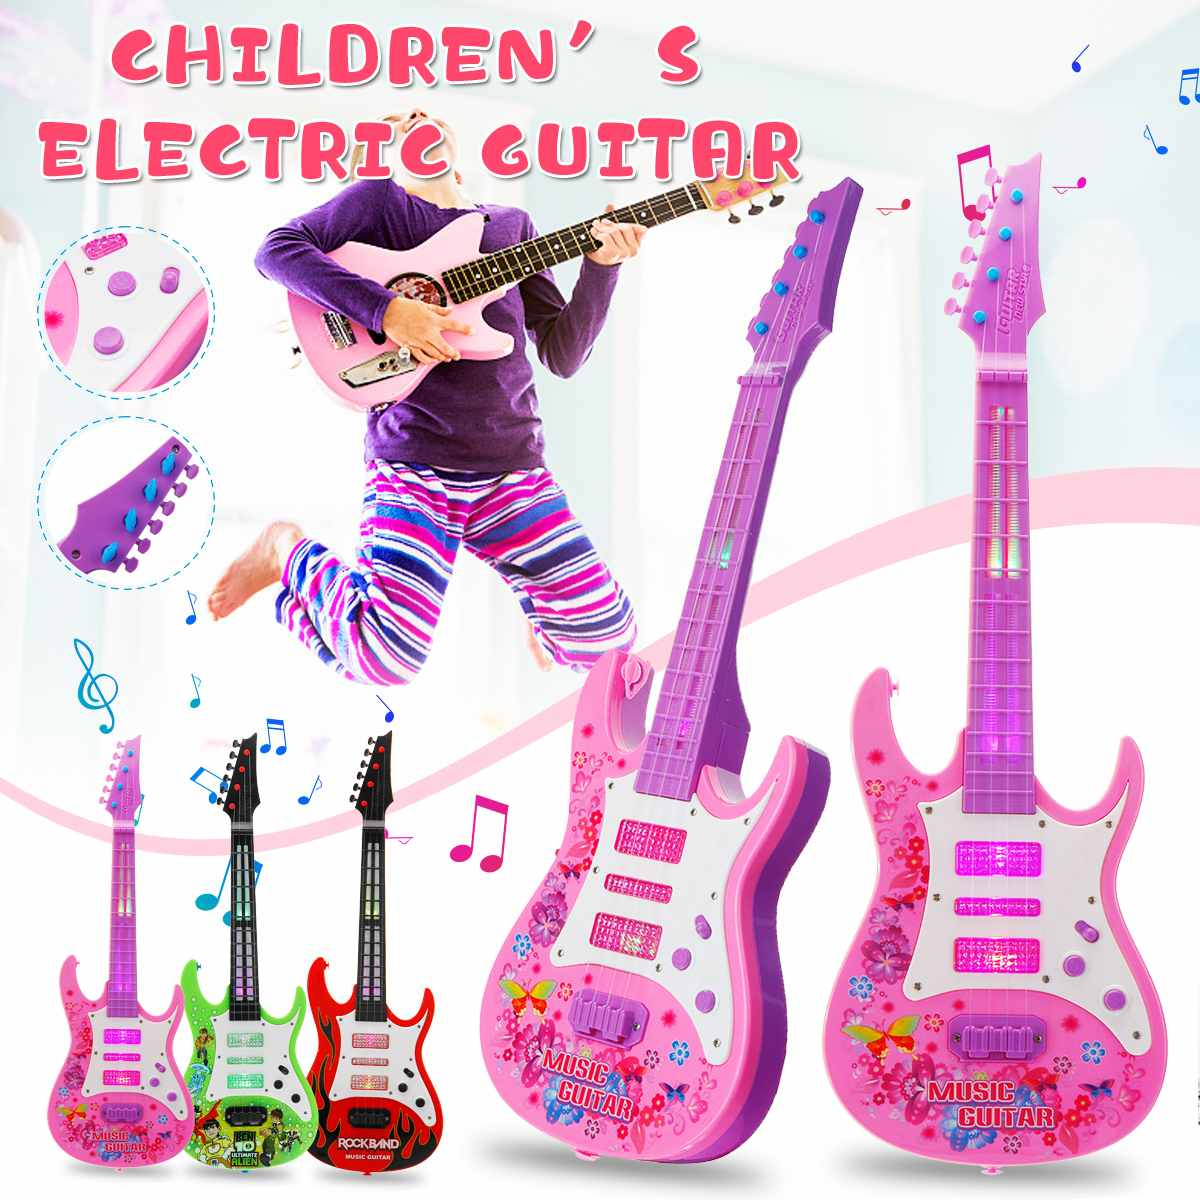 4 Strings Music Electric Guitar Kids Musical Instruments Educational Toys For Children Juguetes As New Year Gift4 Strings Music Electric Guitar Kids Musical Instruments Educational Toys For Children Juguetes As New Year Gift